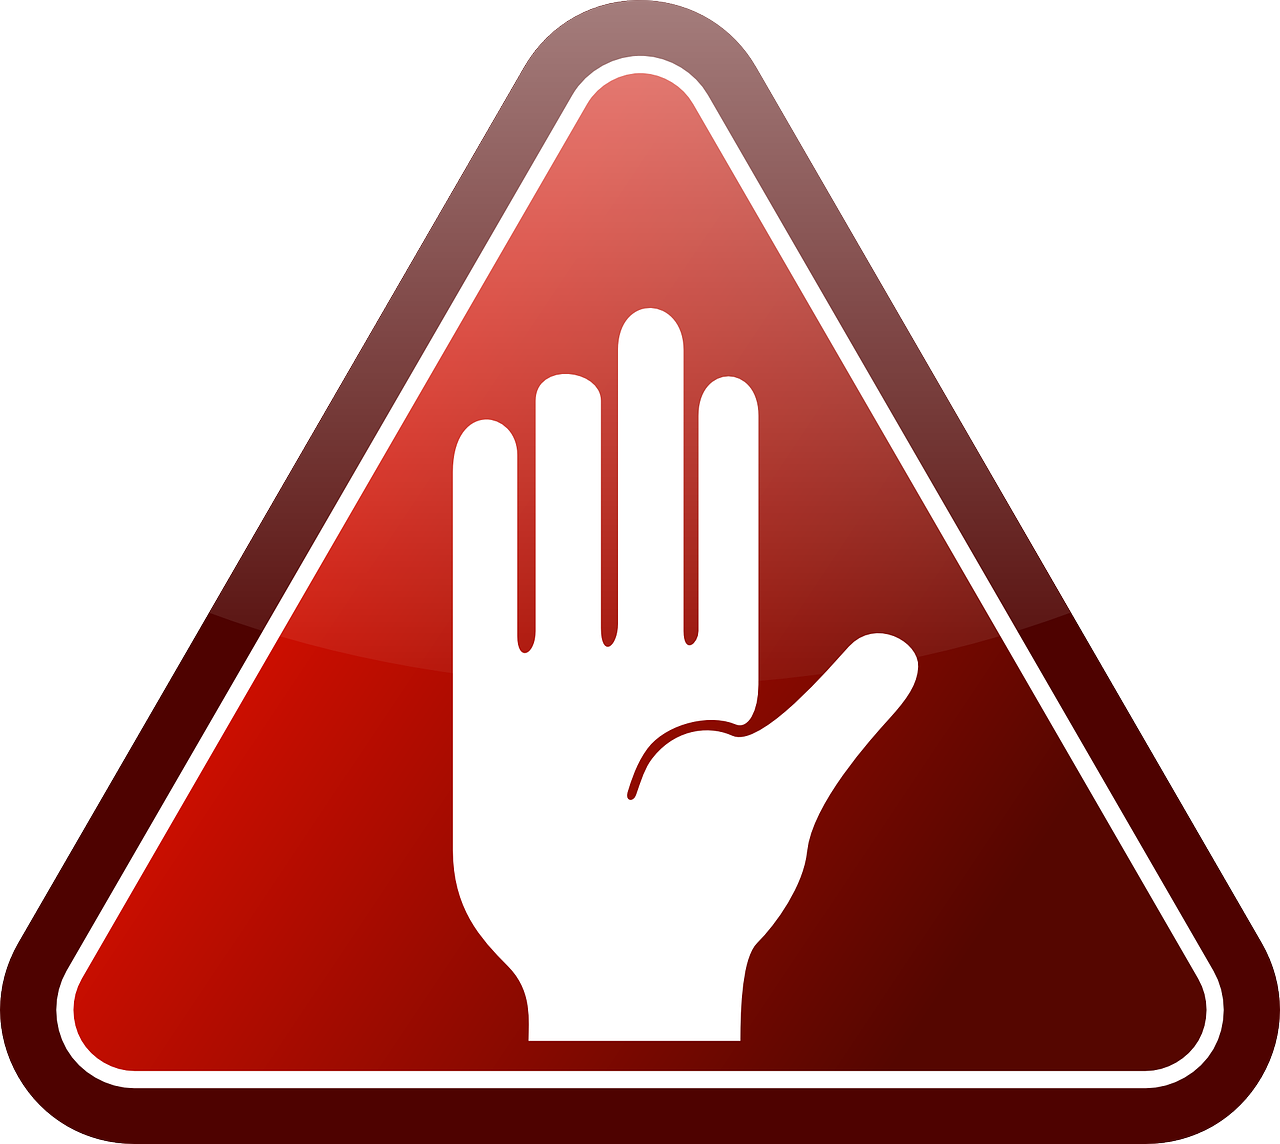 glossy,hand,red,stop,triangle,warning,white,free vector graphics,free pictures, free photos, free images, royalty free, free illustrations, public domain